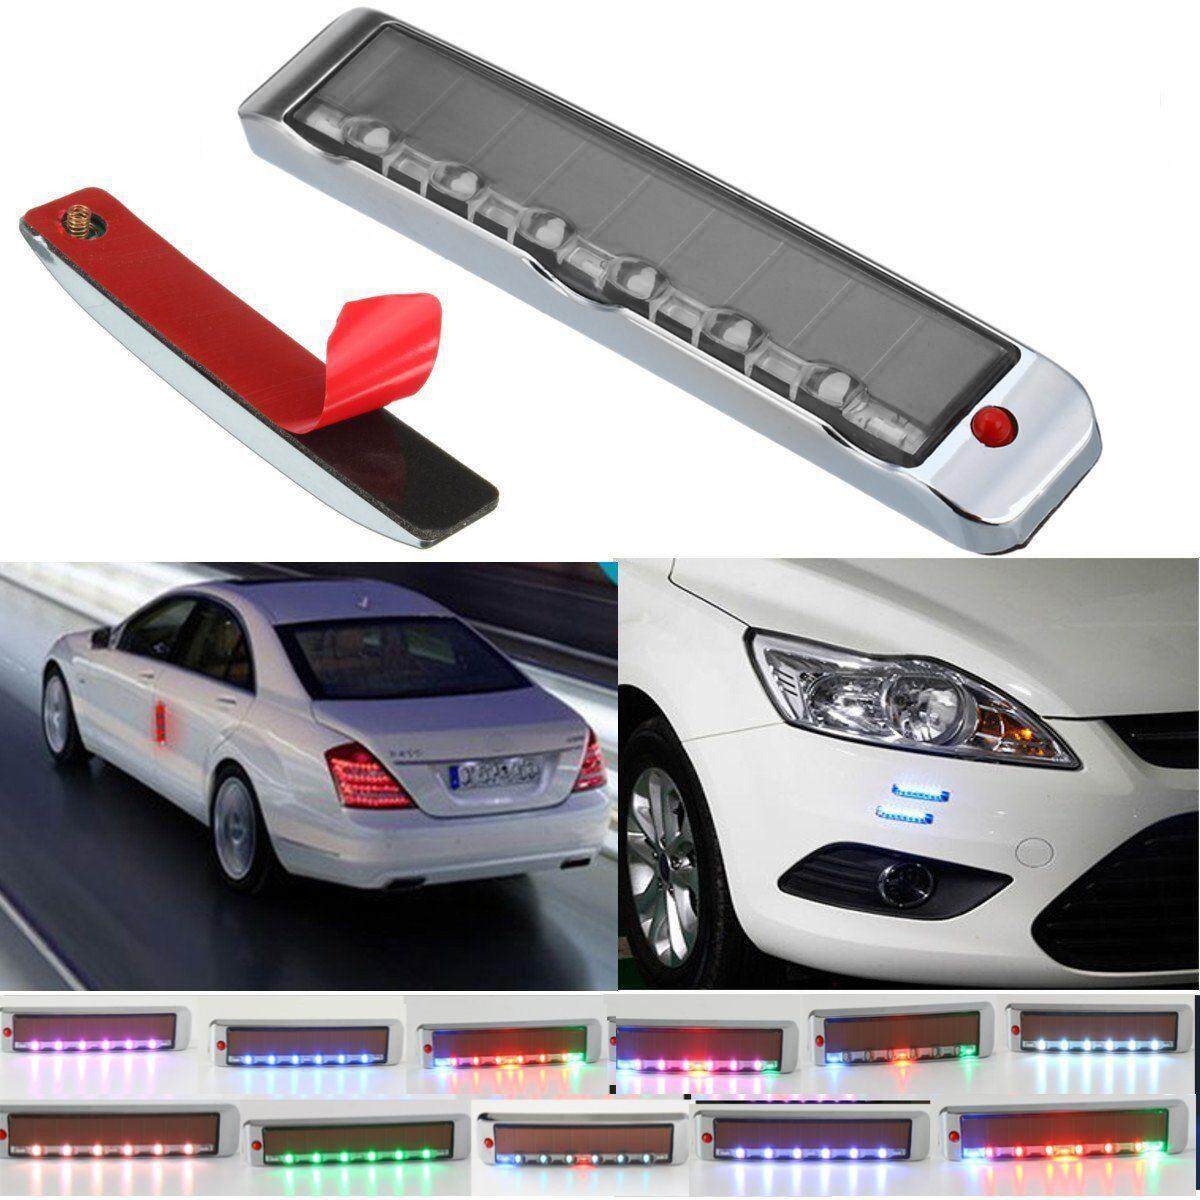 Door Edge Guards Scratch Protector Solar Powered 7 LED Strobe Warning Light 4V